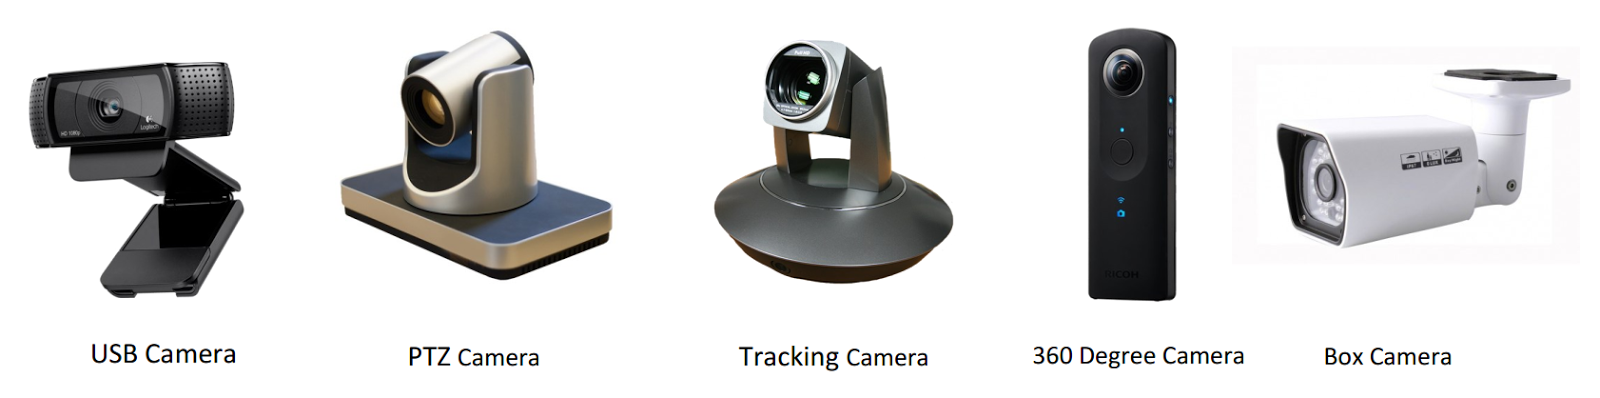 PTZ Camera Pan Tilt Zoom Is Best Used For Practical Spaces Where The Can Be Pre Set To Different Room Locations